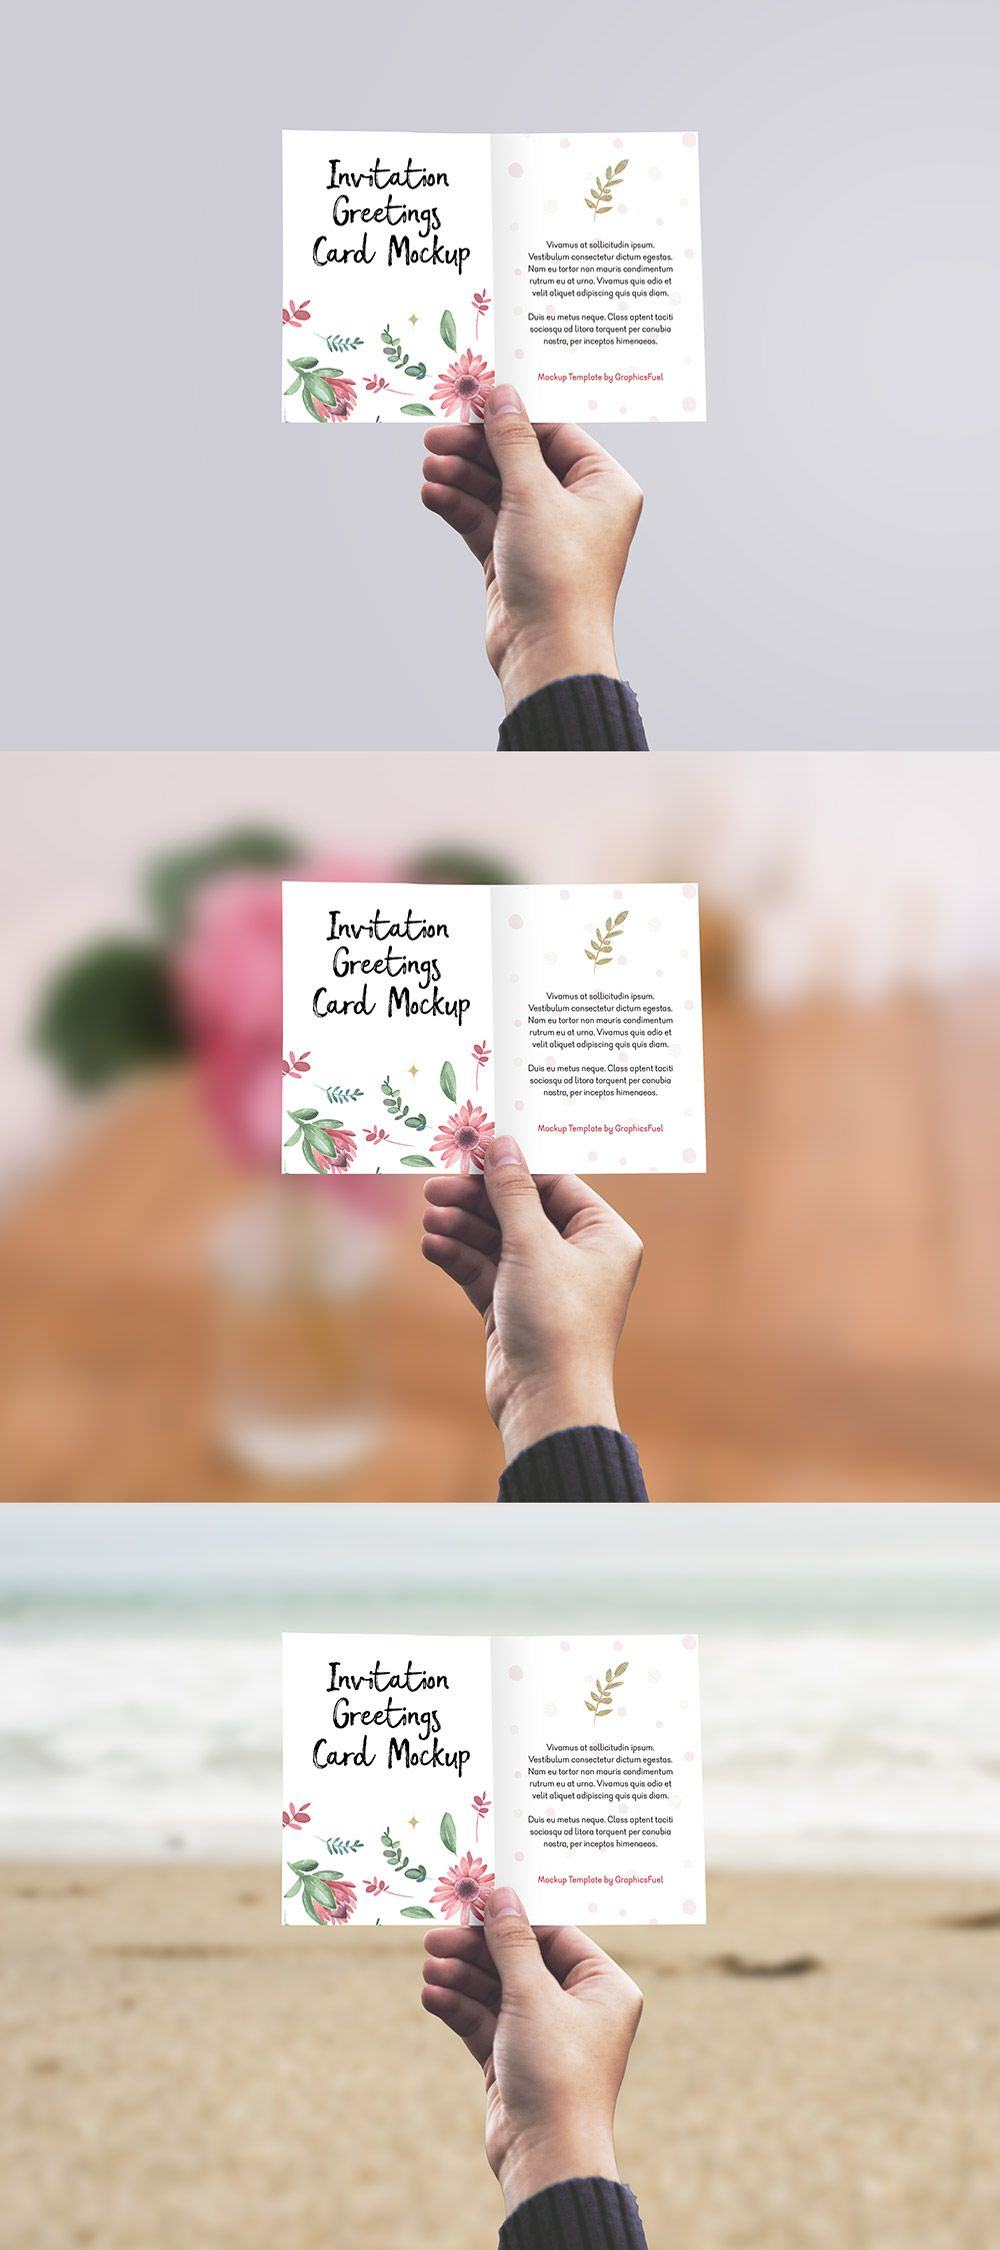 Invitation Greeting Card In Hand Mockup Psd Mock Pinterest